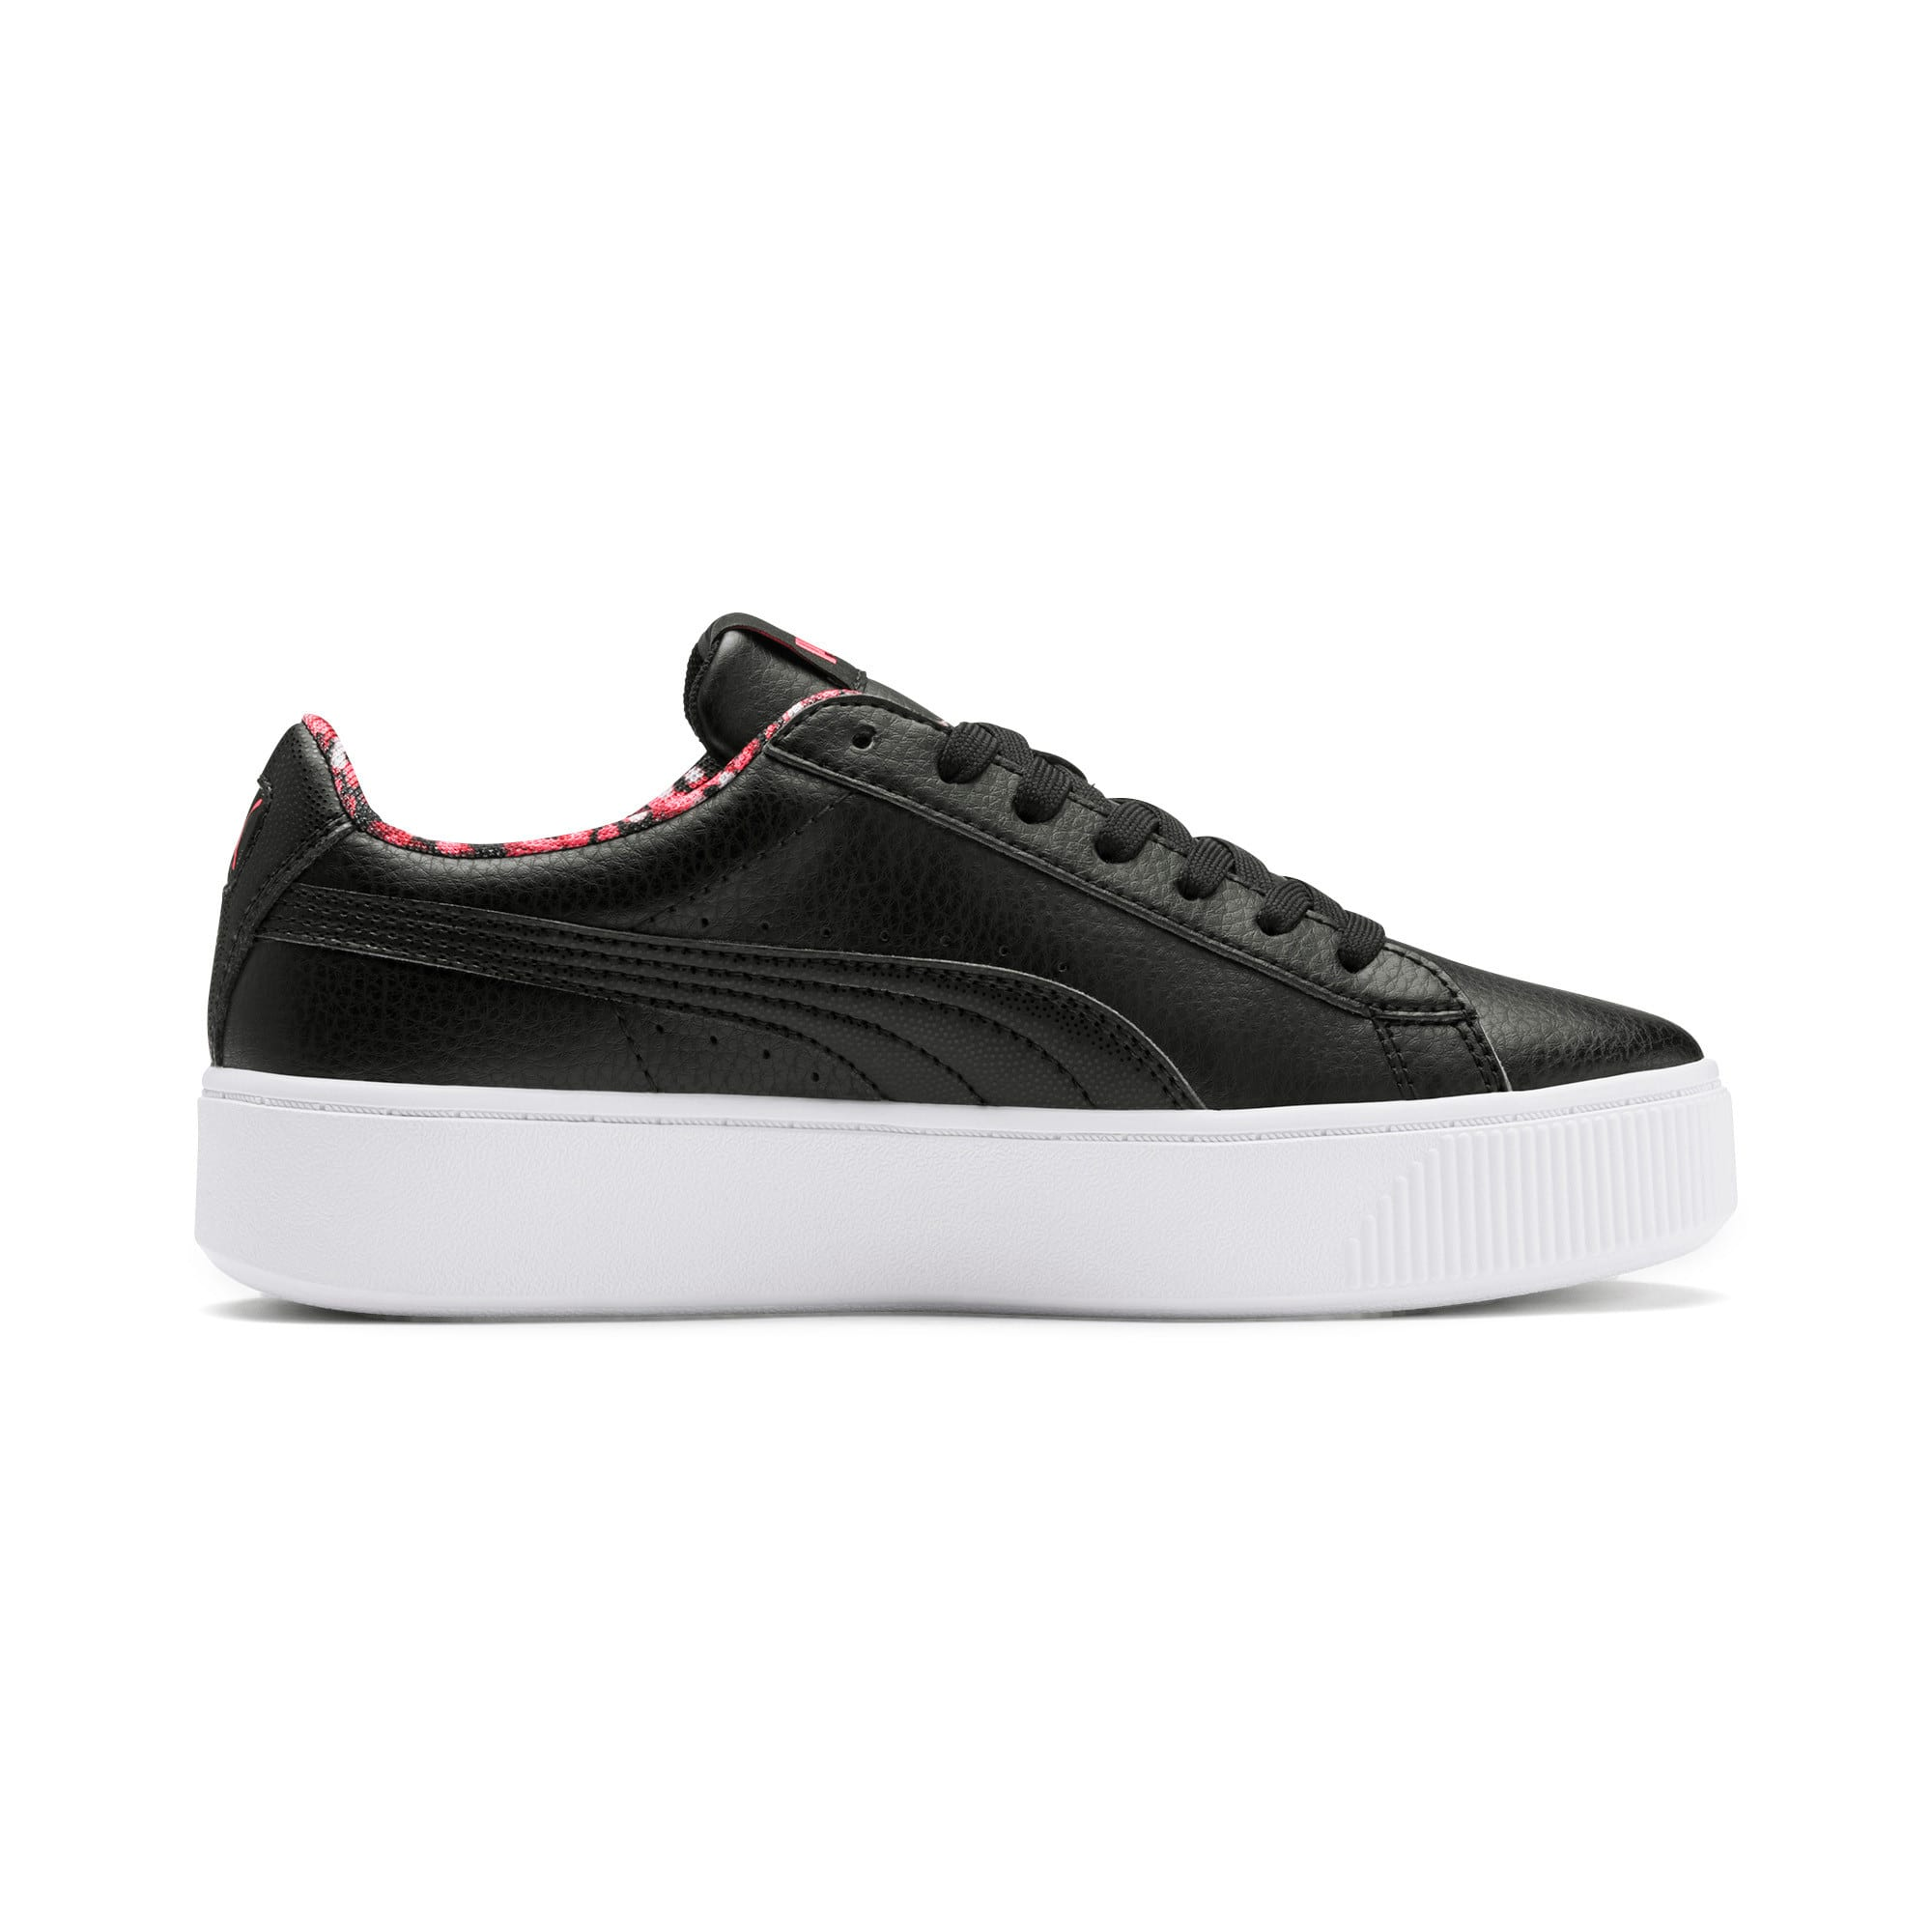 Thumbnail 6 of Vikky Stacked Neon Lights Women's Trainers, Puma Black-Puma Black- Coral, medium-IND